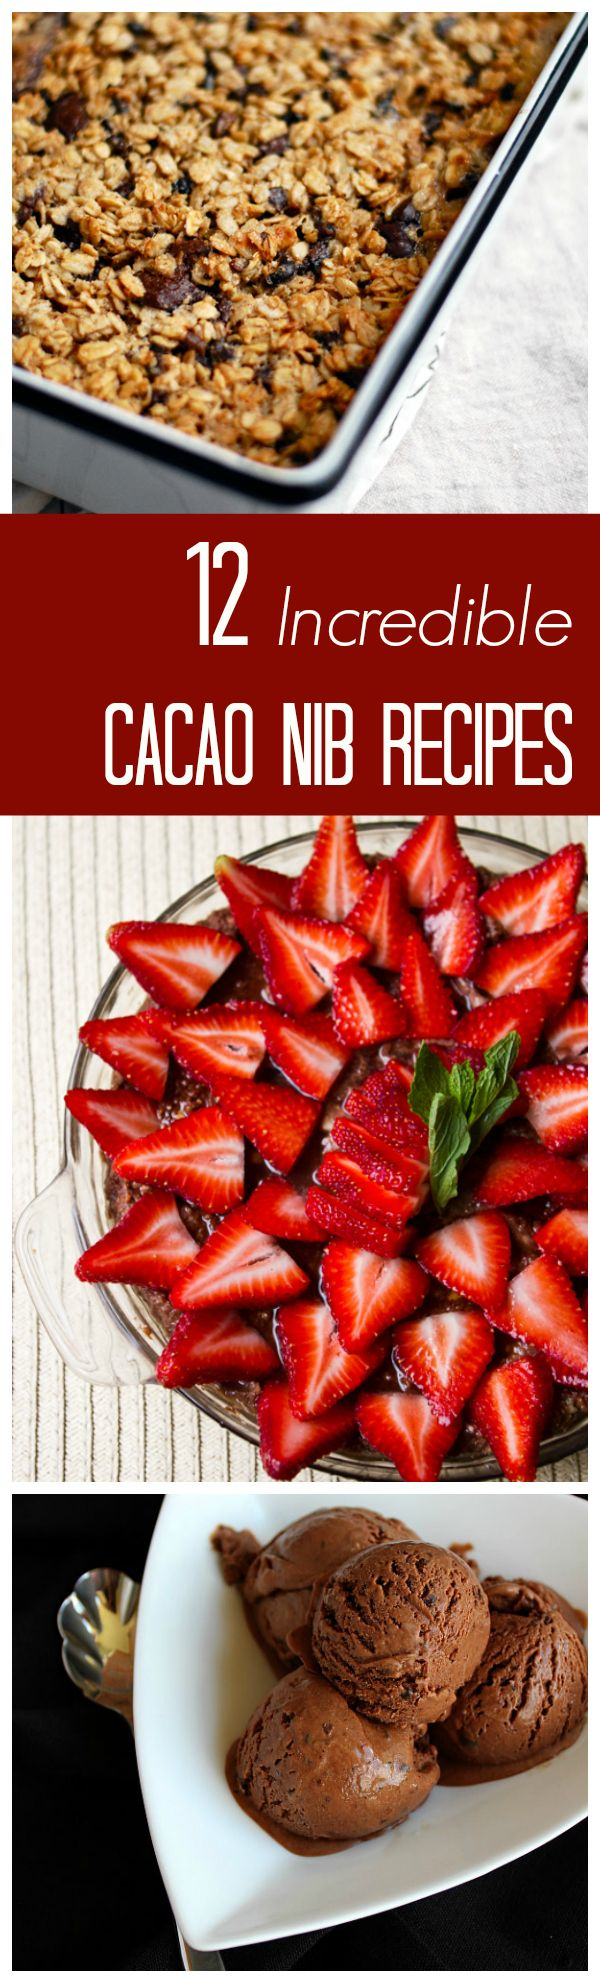 12 Incredible Ways to Cook with Cacao Nibs